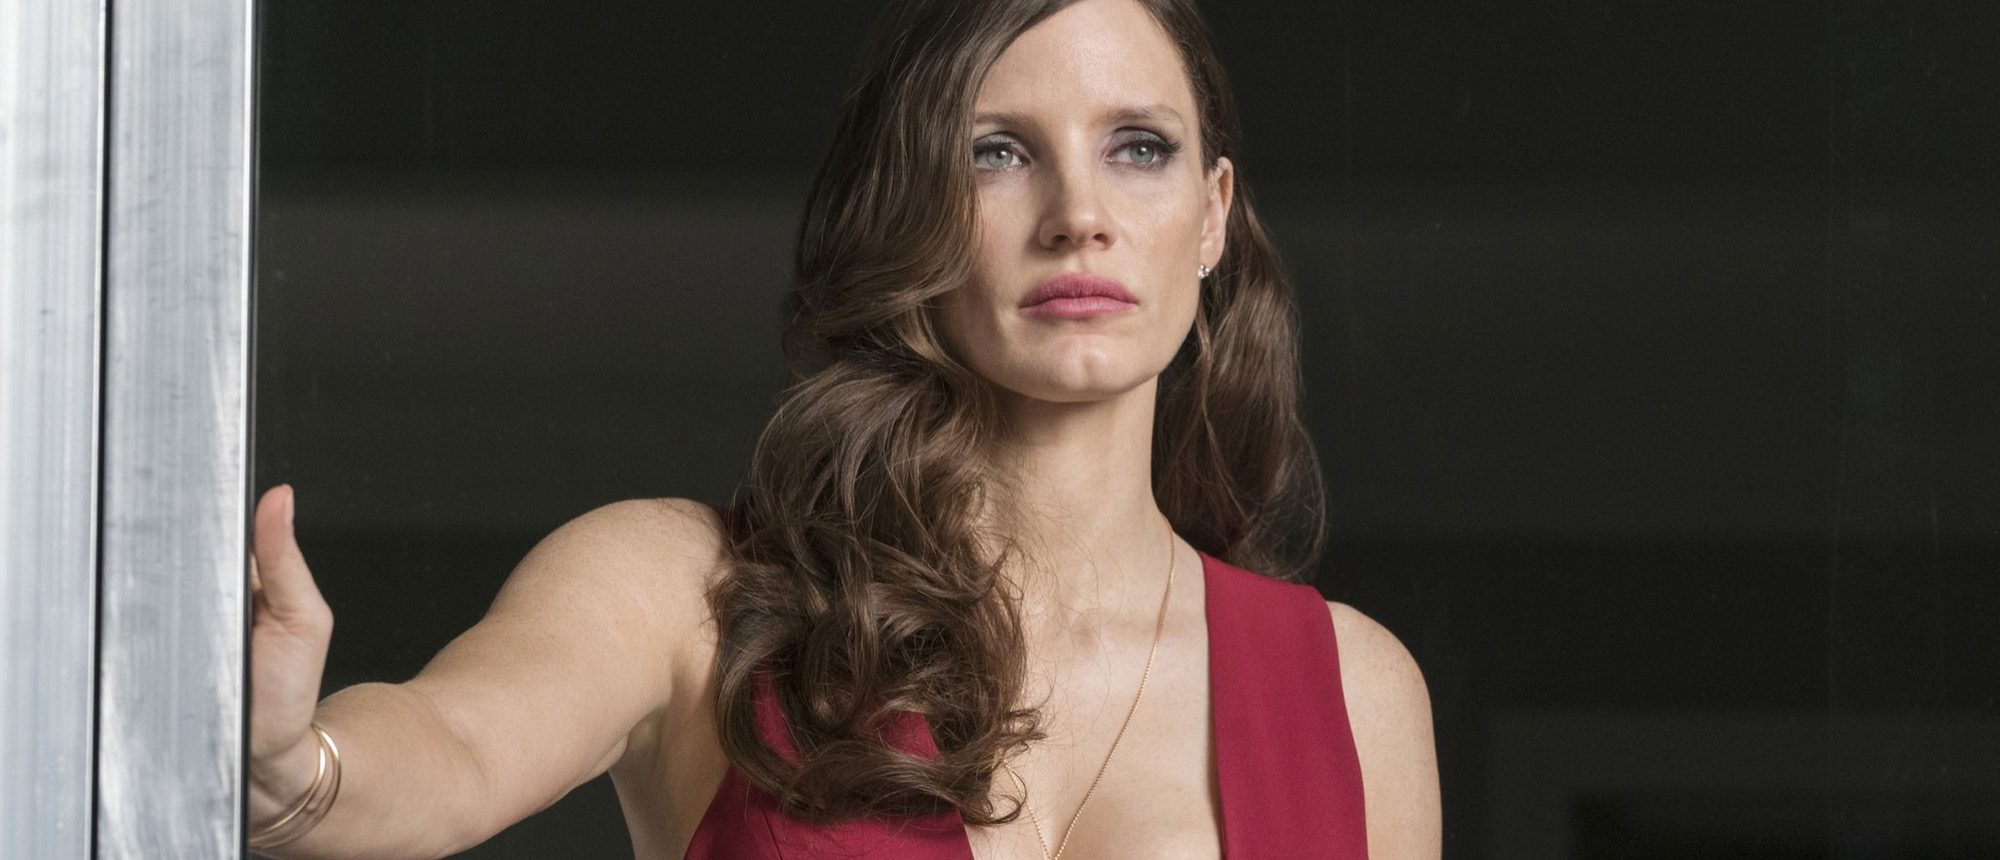 What did we learn from Molly's Game?